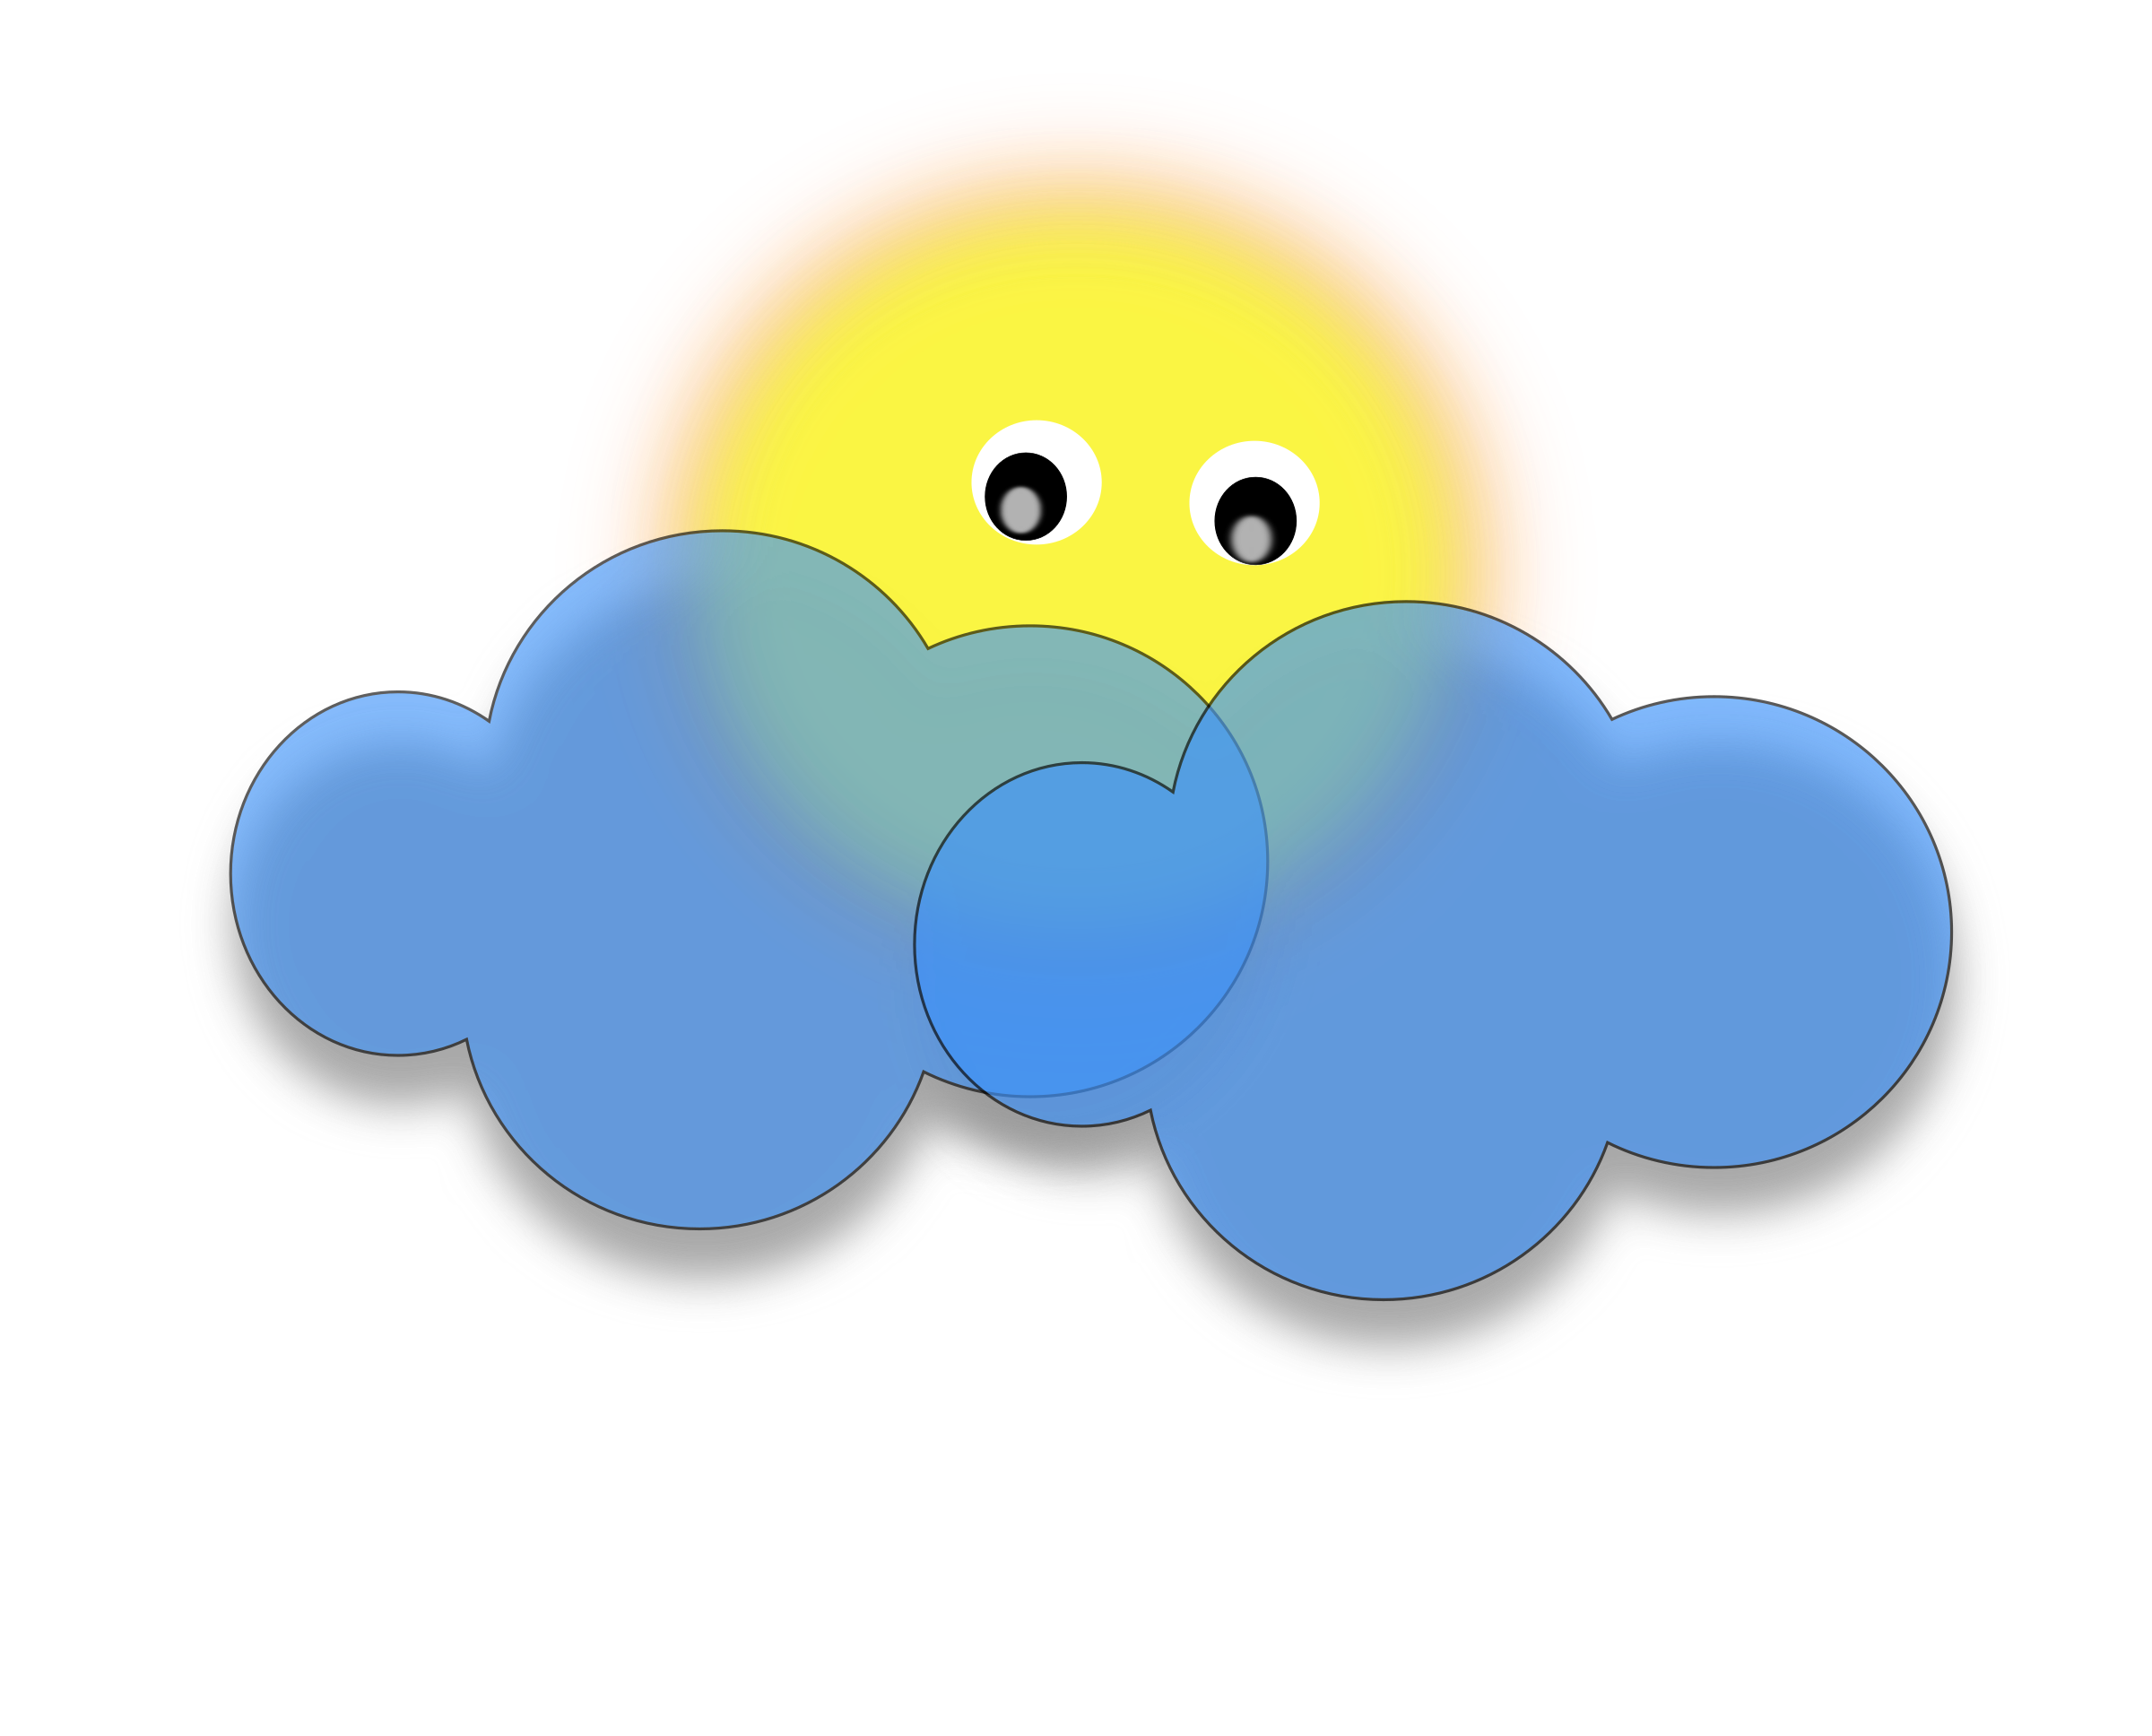 sun behind the cloud vector clipart image free stock photo